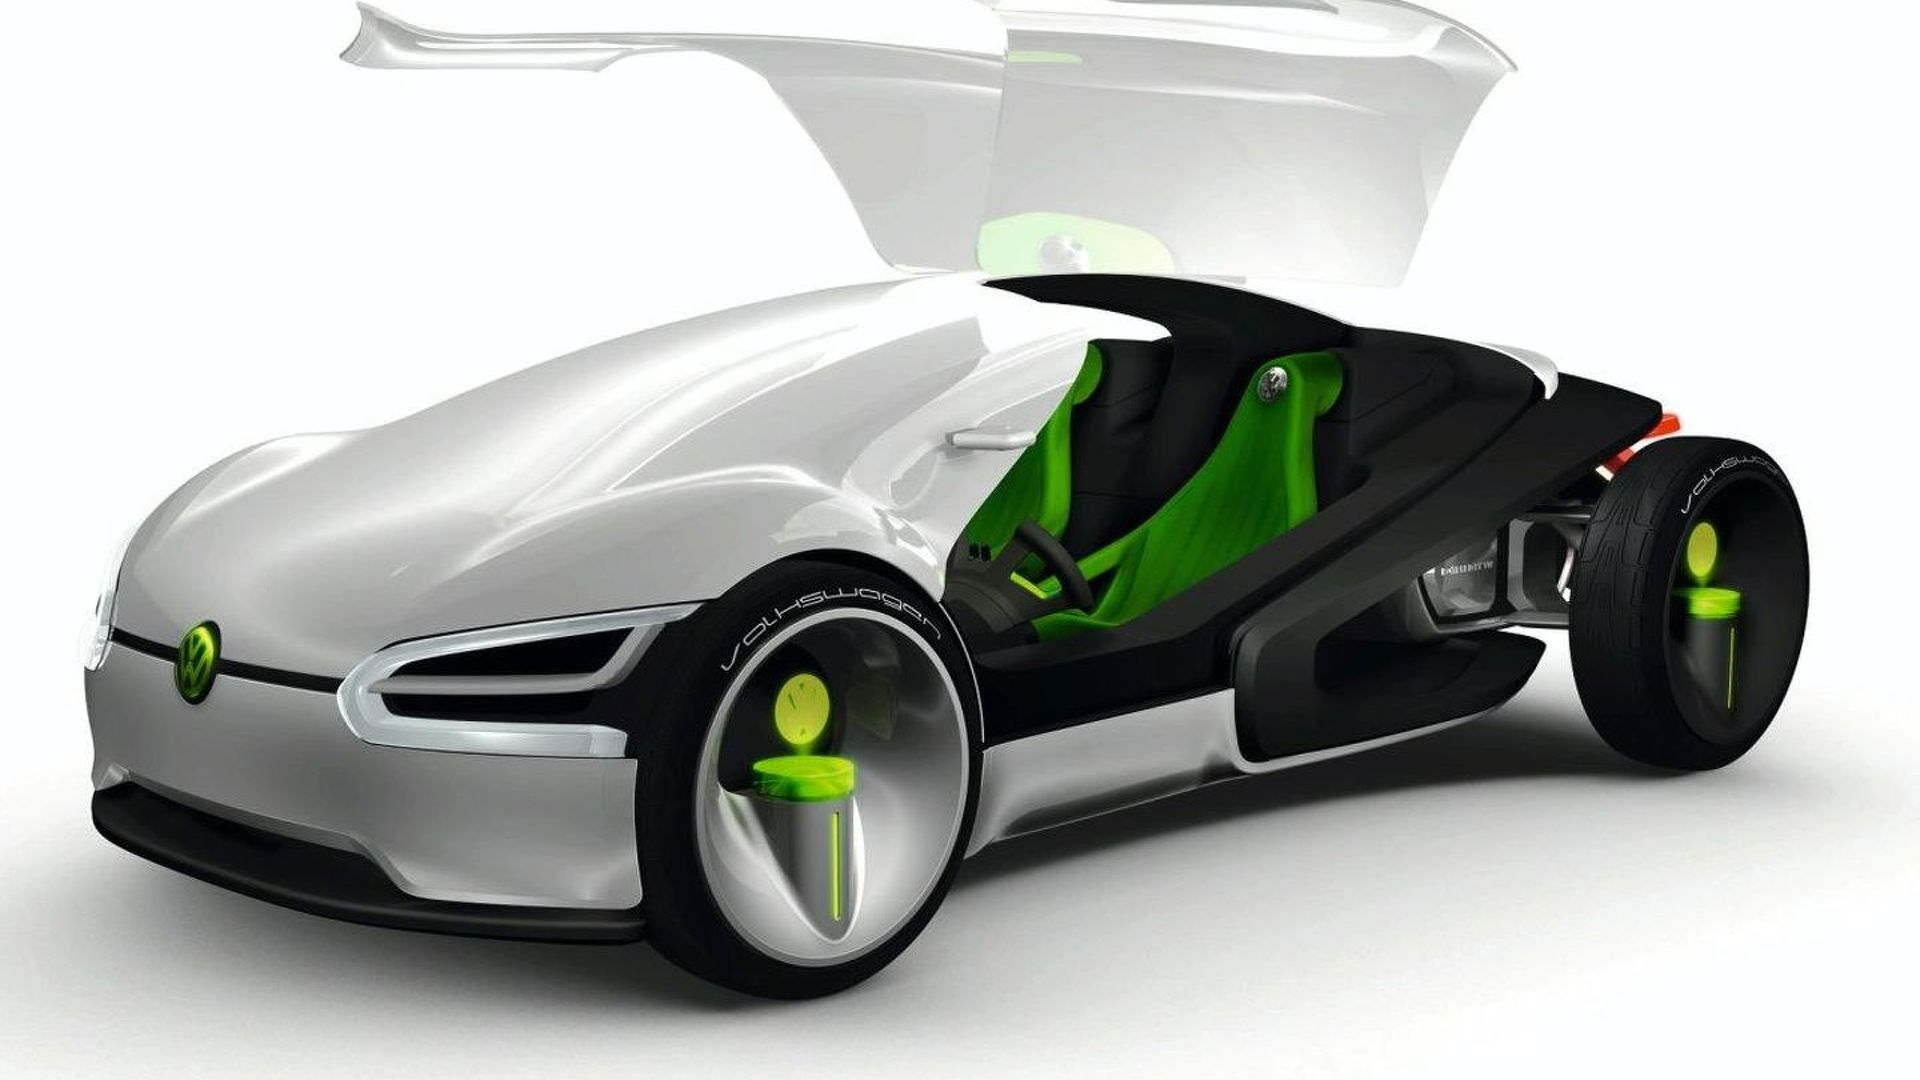 VW Presents Three Concepts for the Year 2028